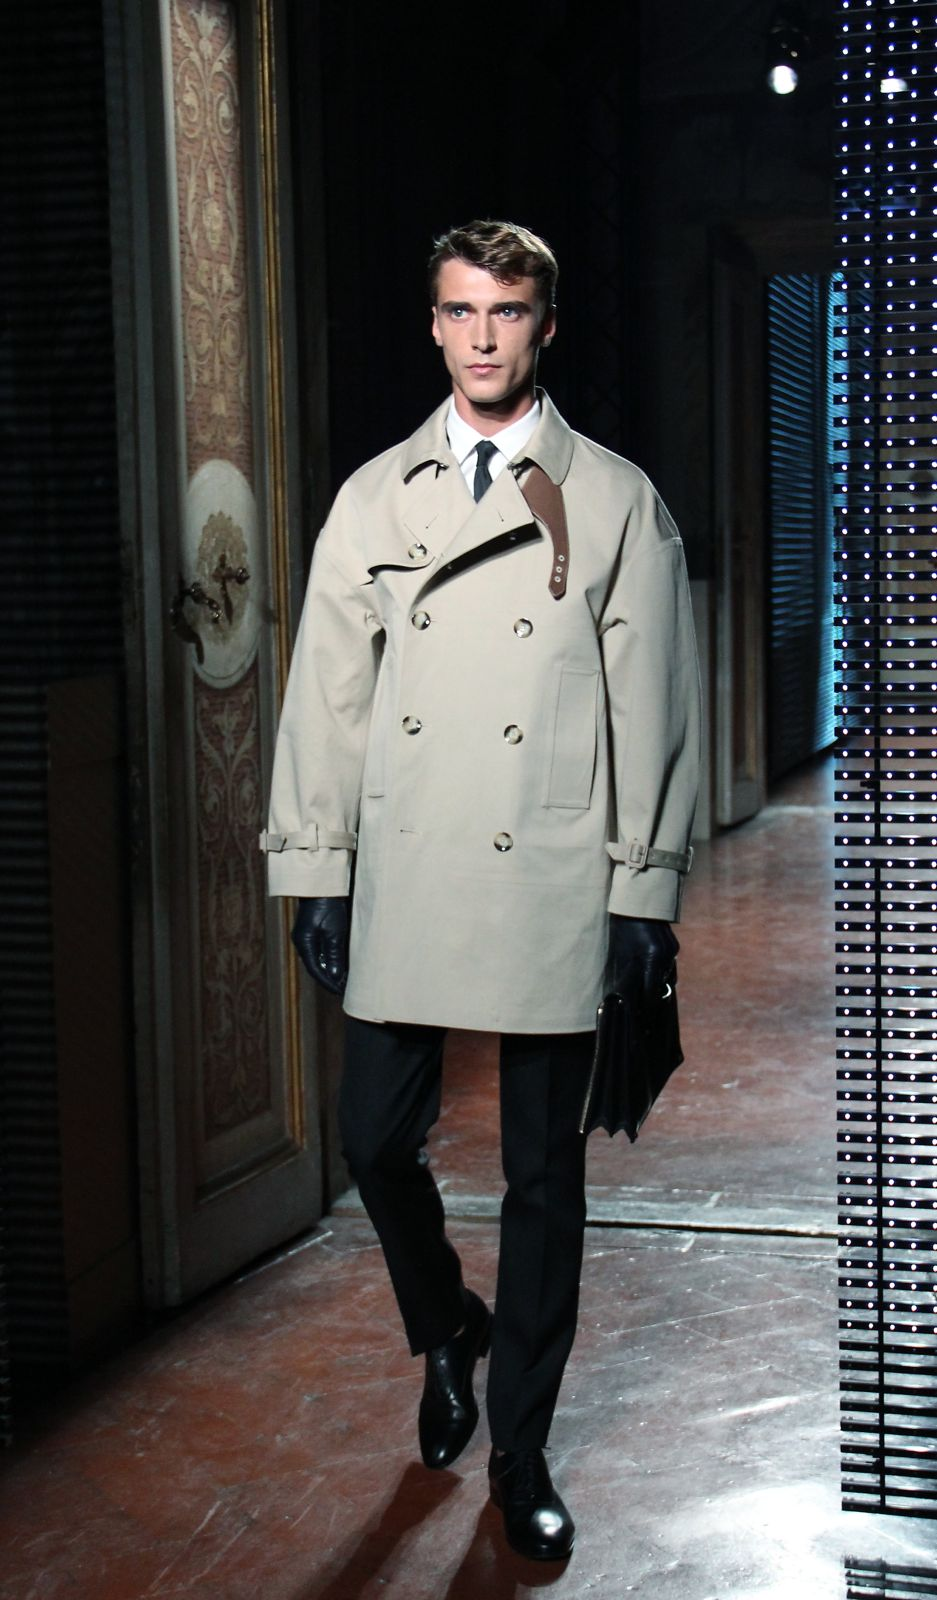 Pitti Immagine Uomo Valentino Men's Collection F/W 2012-13